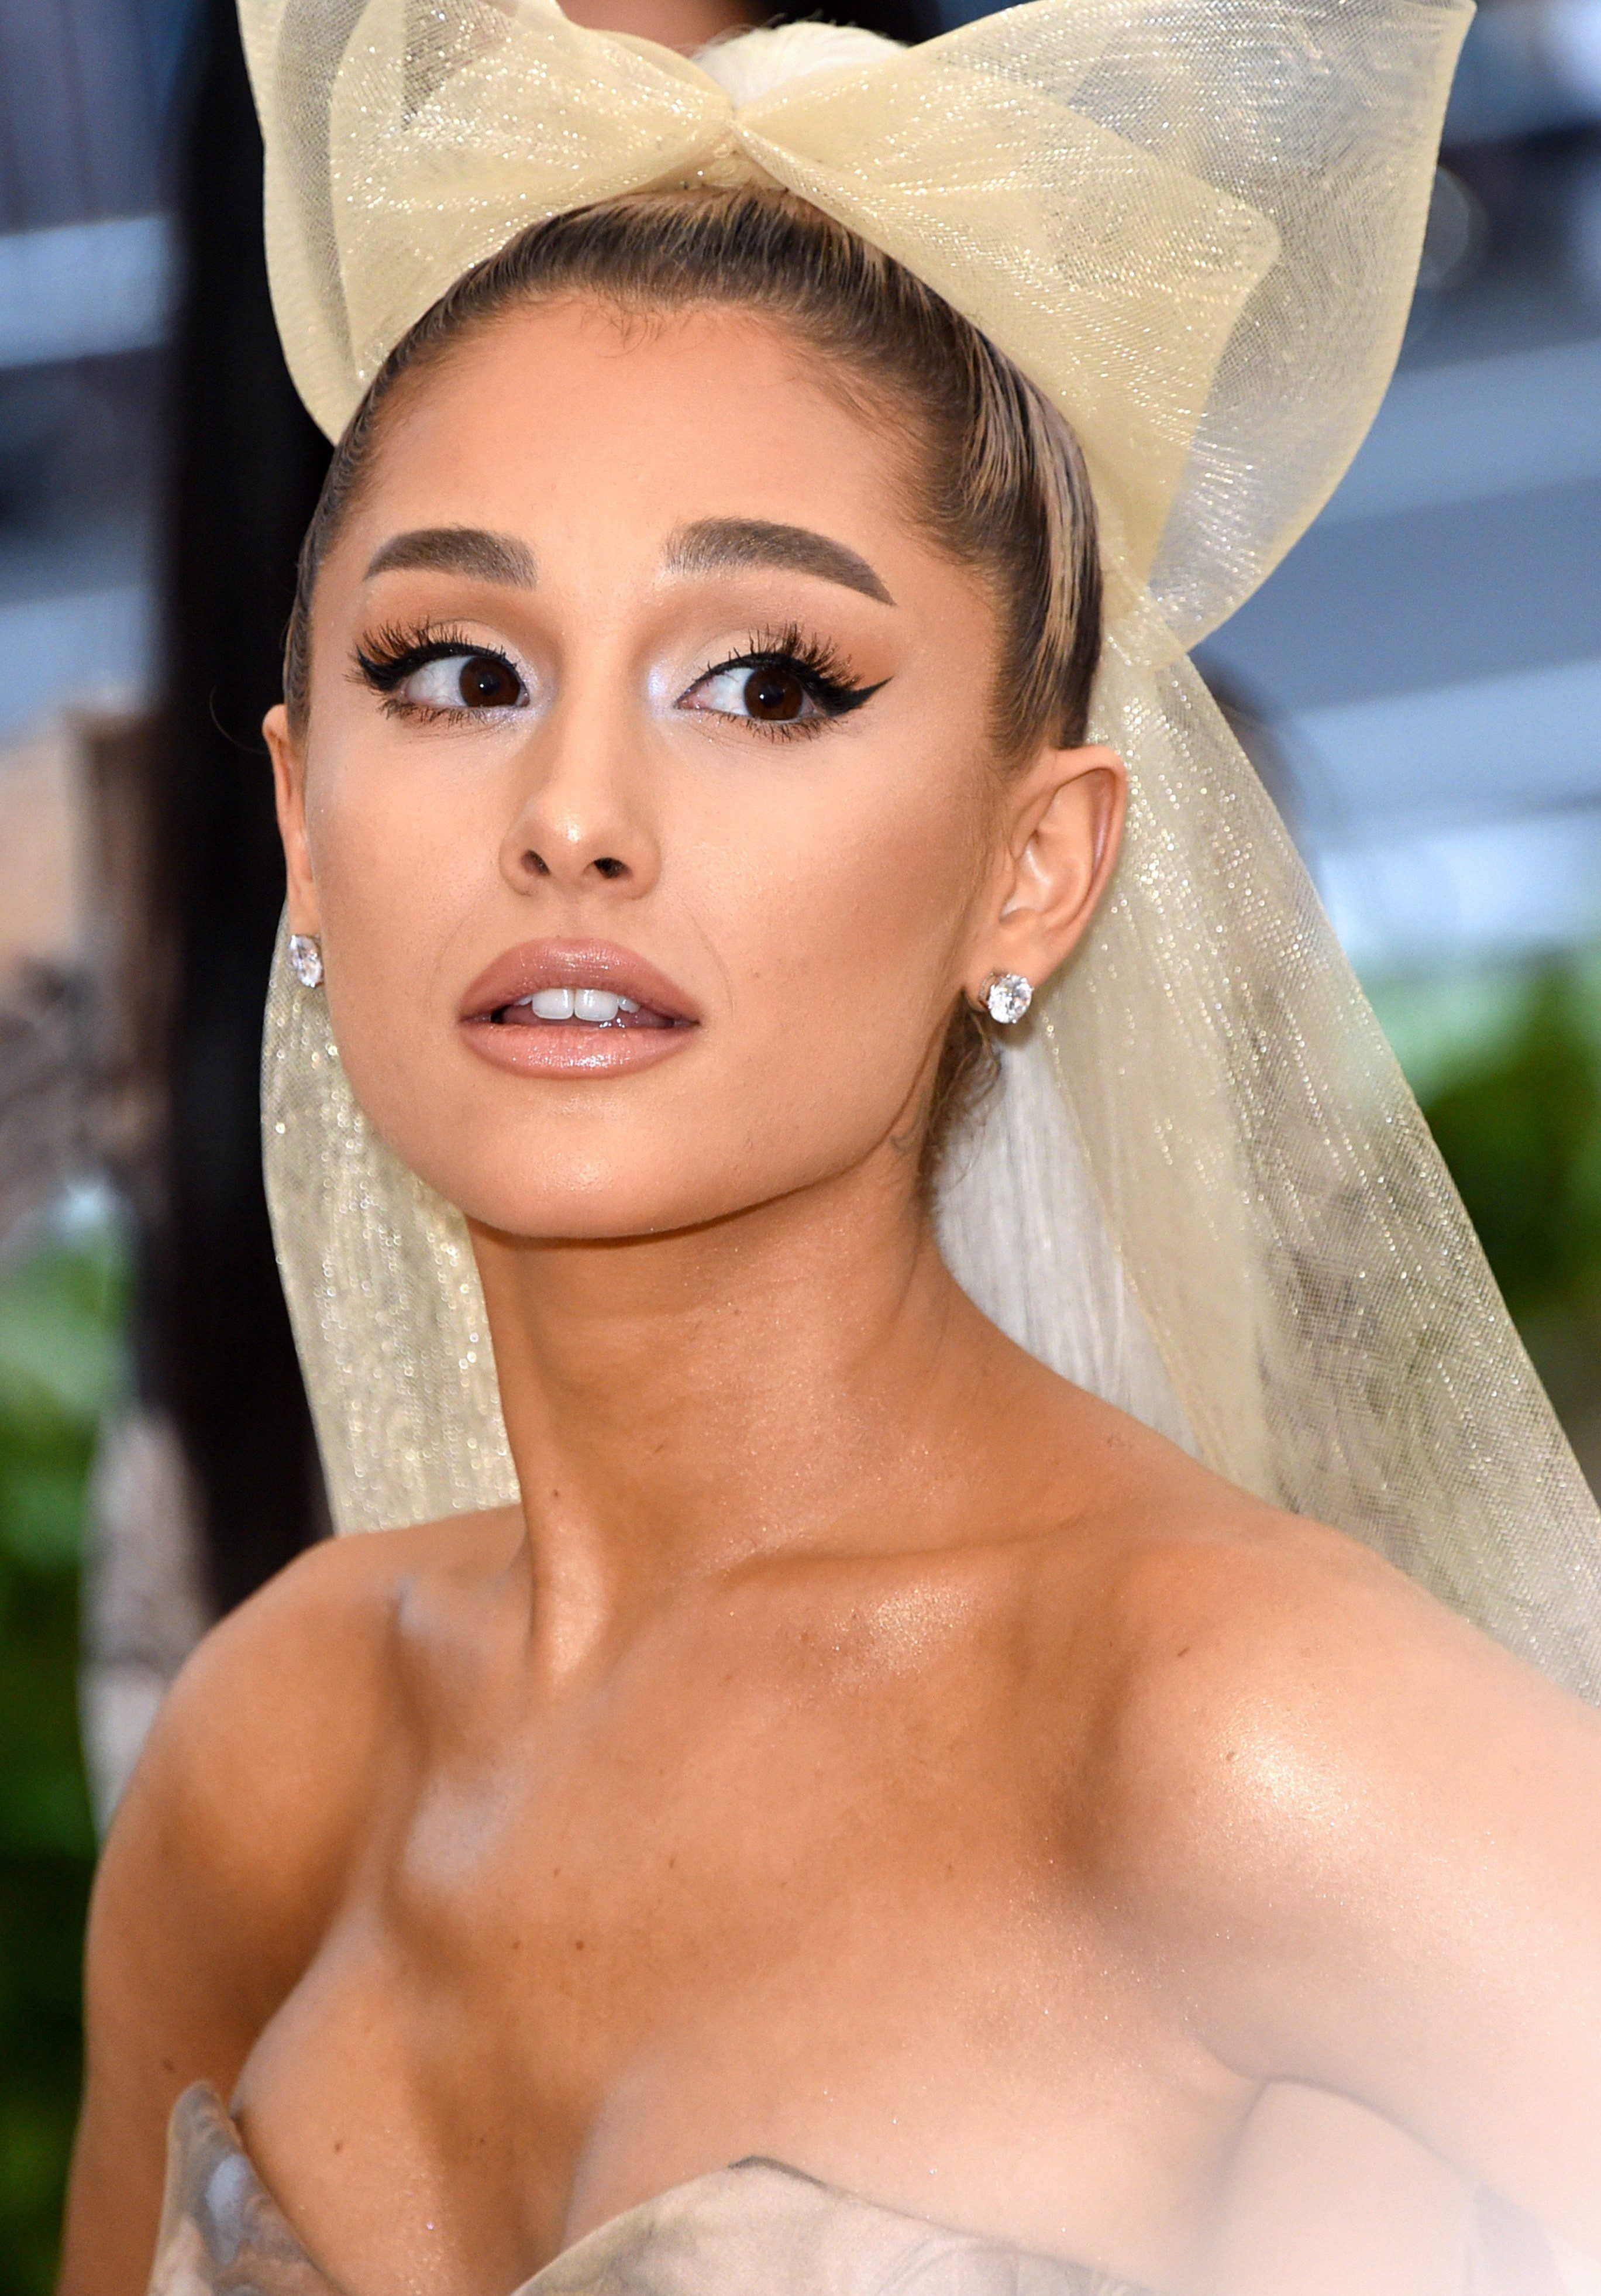 Ariana e1544782762174 1 Celebs Before And After Surgery